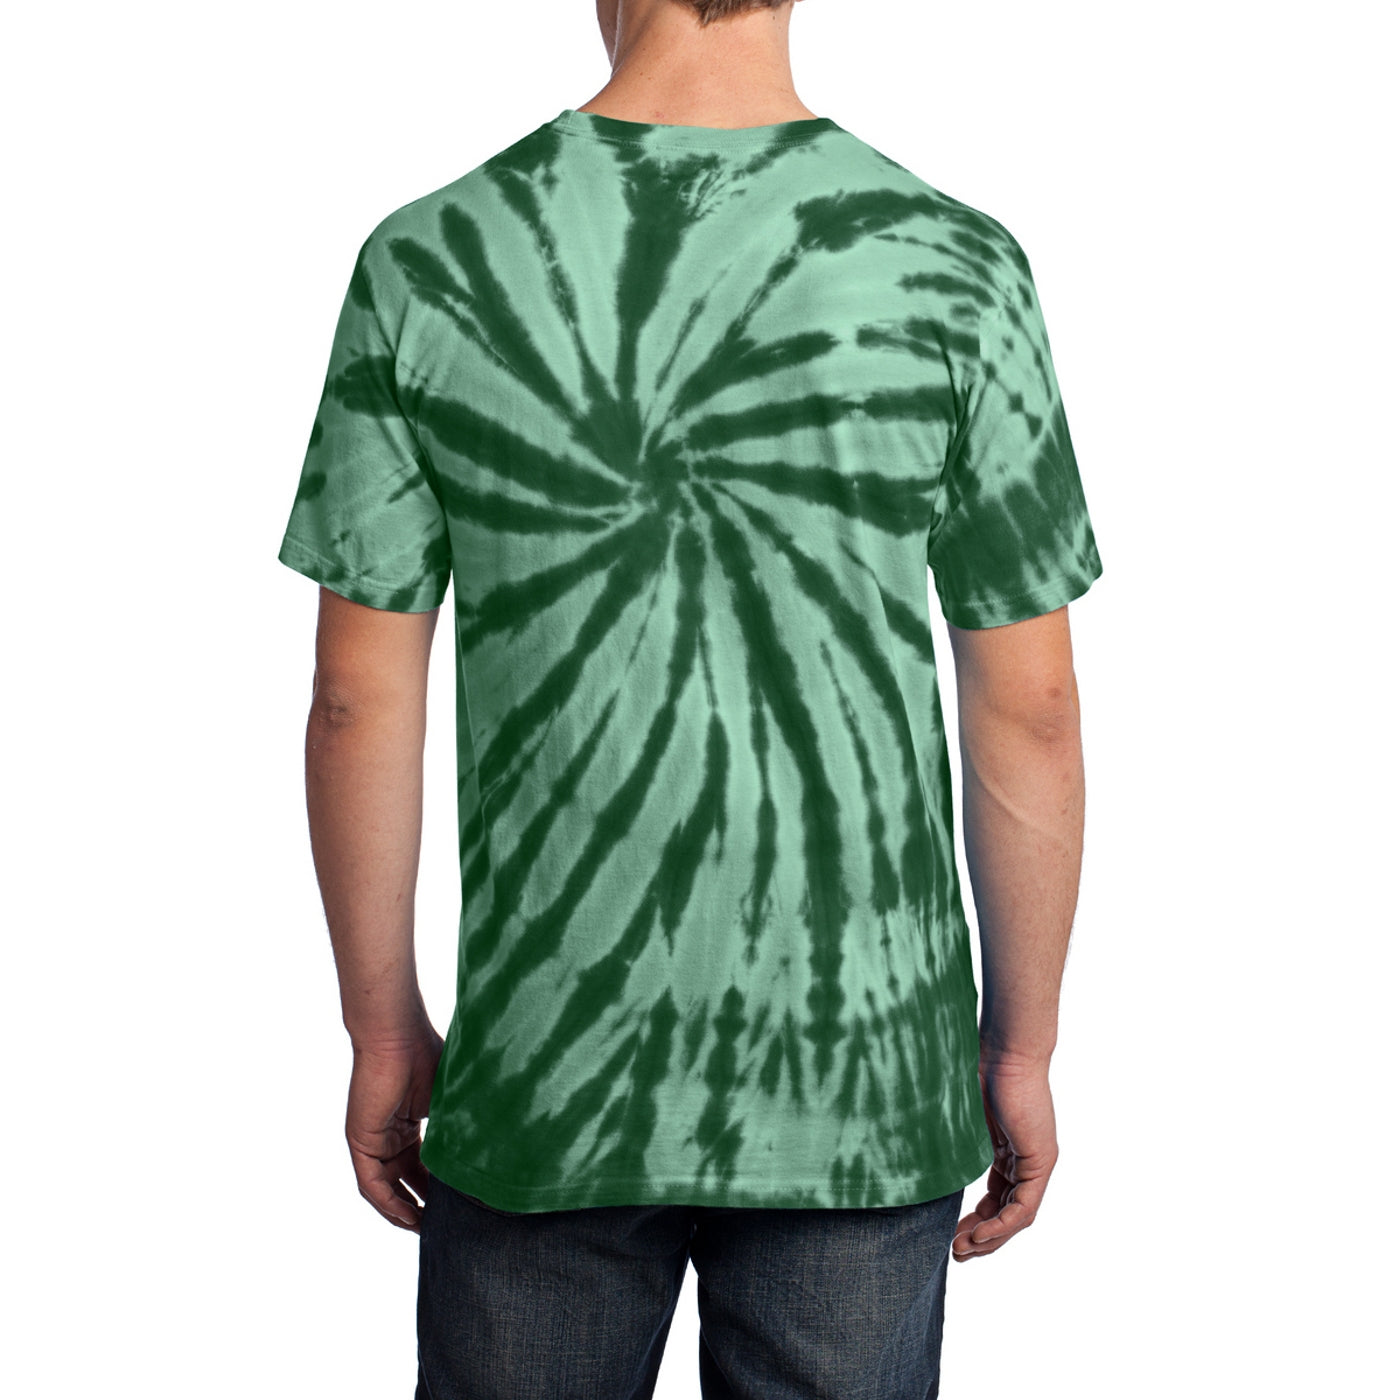 Men's Tie-Dye Tee - Forest Green - Back